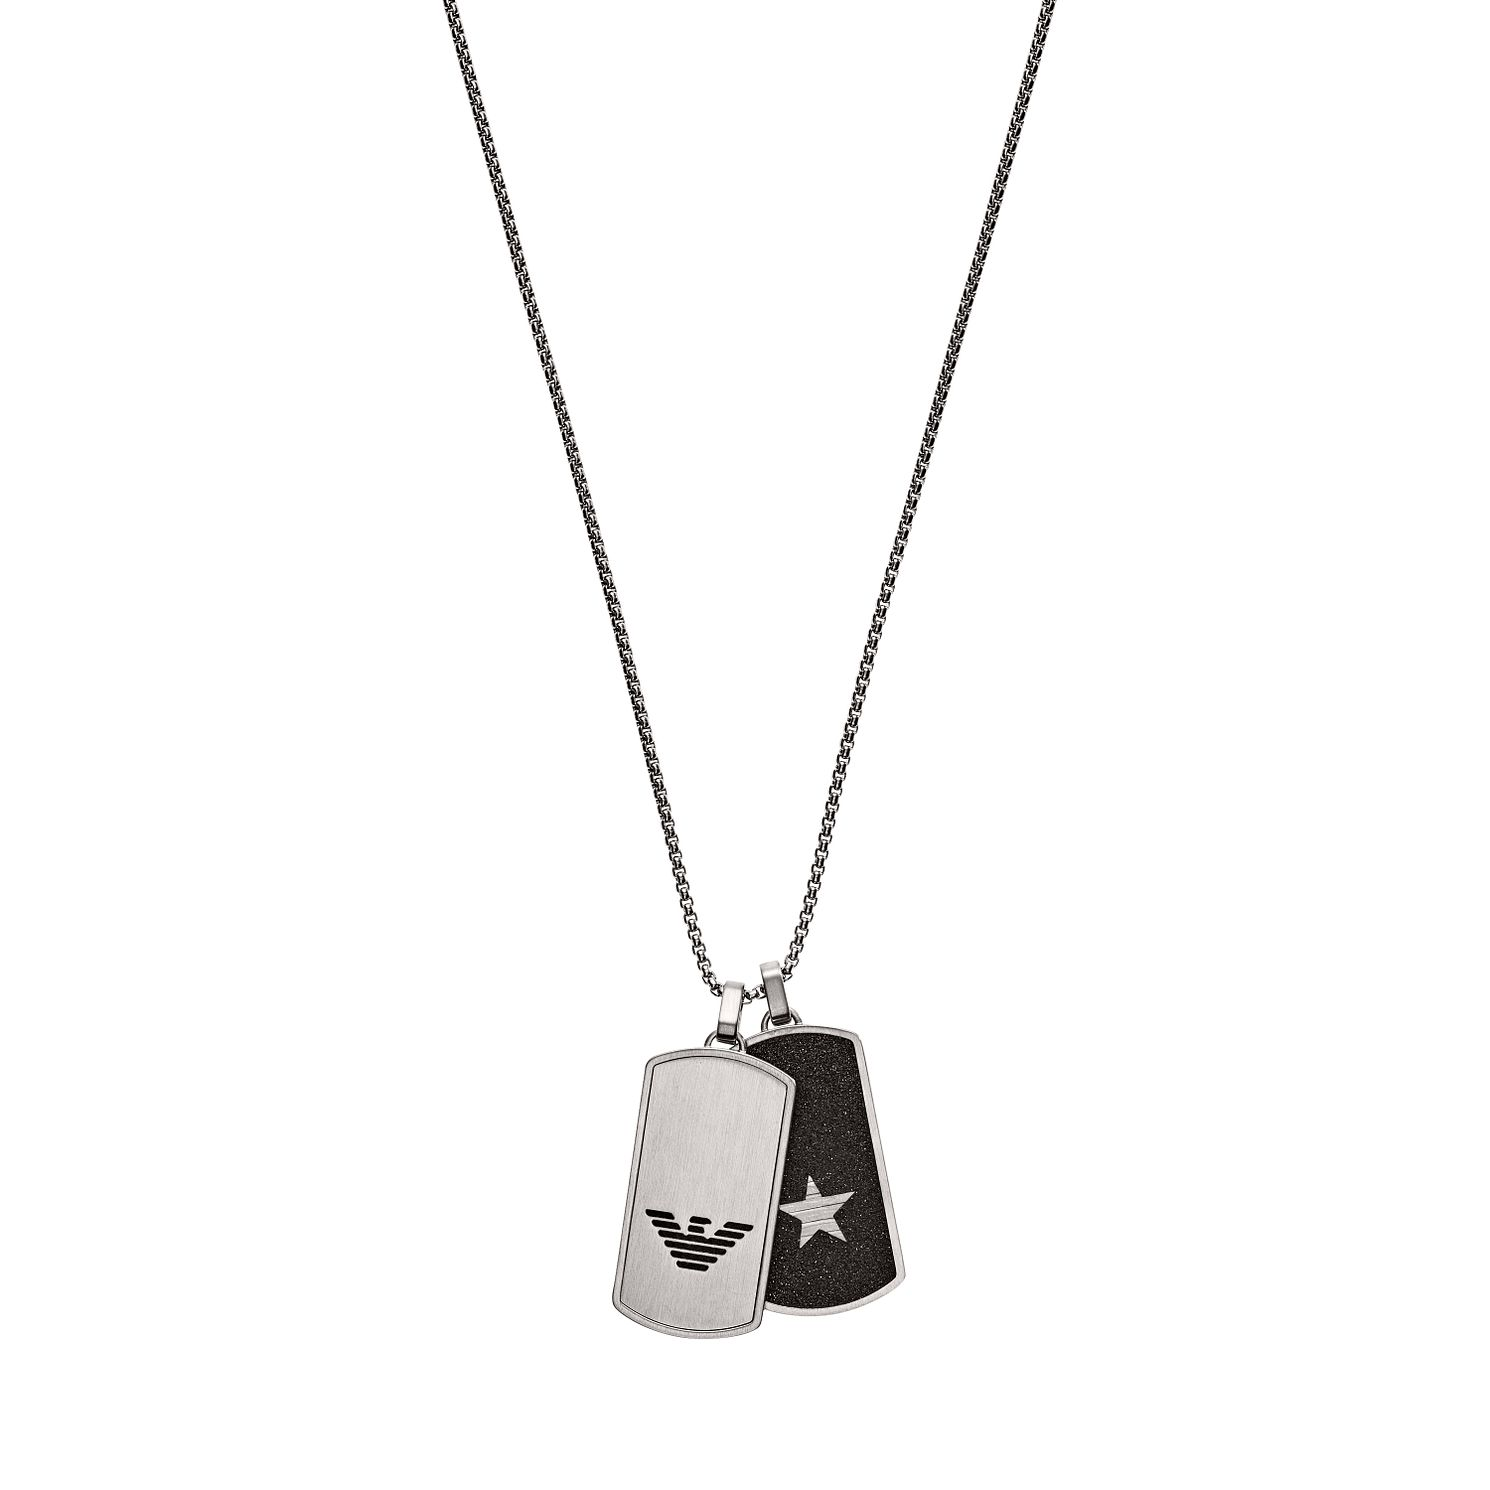 Emporio Armani Stainless Steel Men's Dog Tag Pendant - Product number 3486109